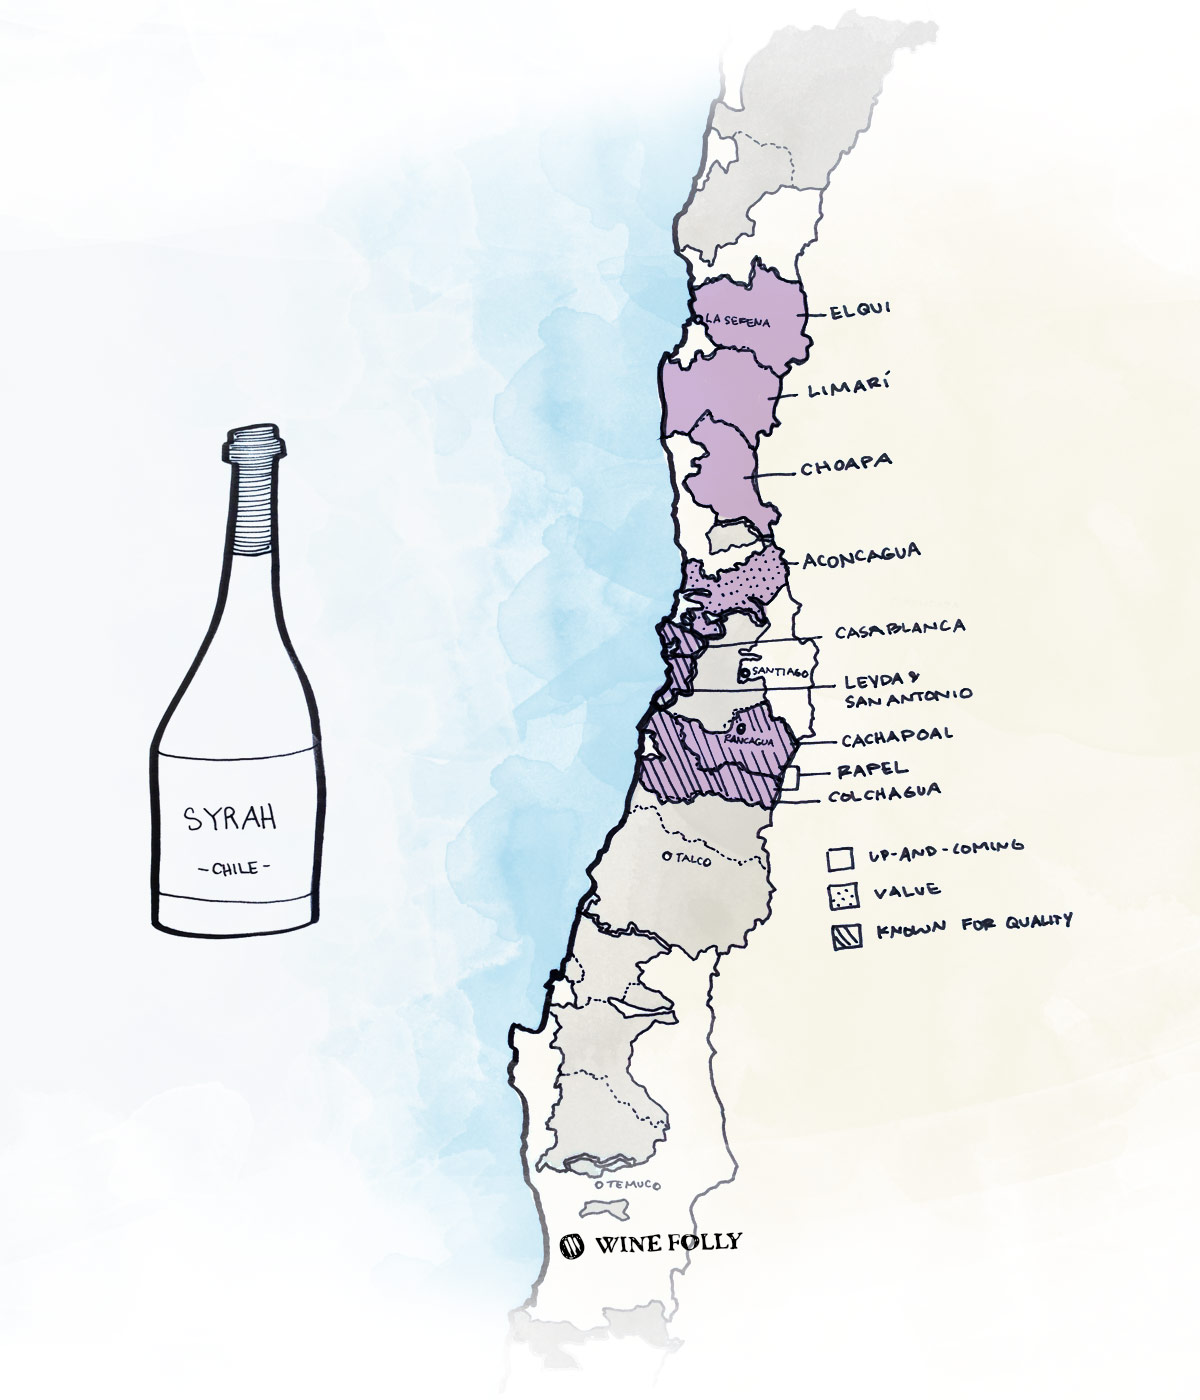 Best wine regions in Chile for Syrah wine